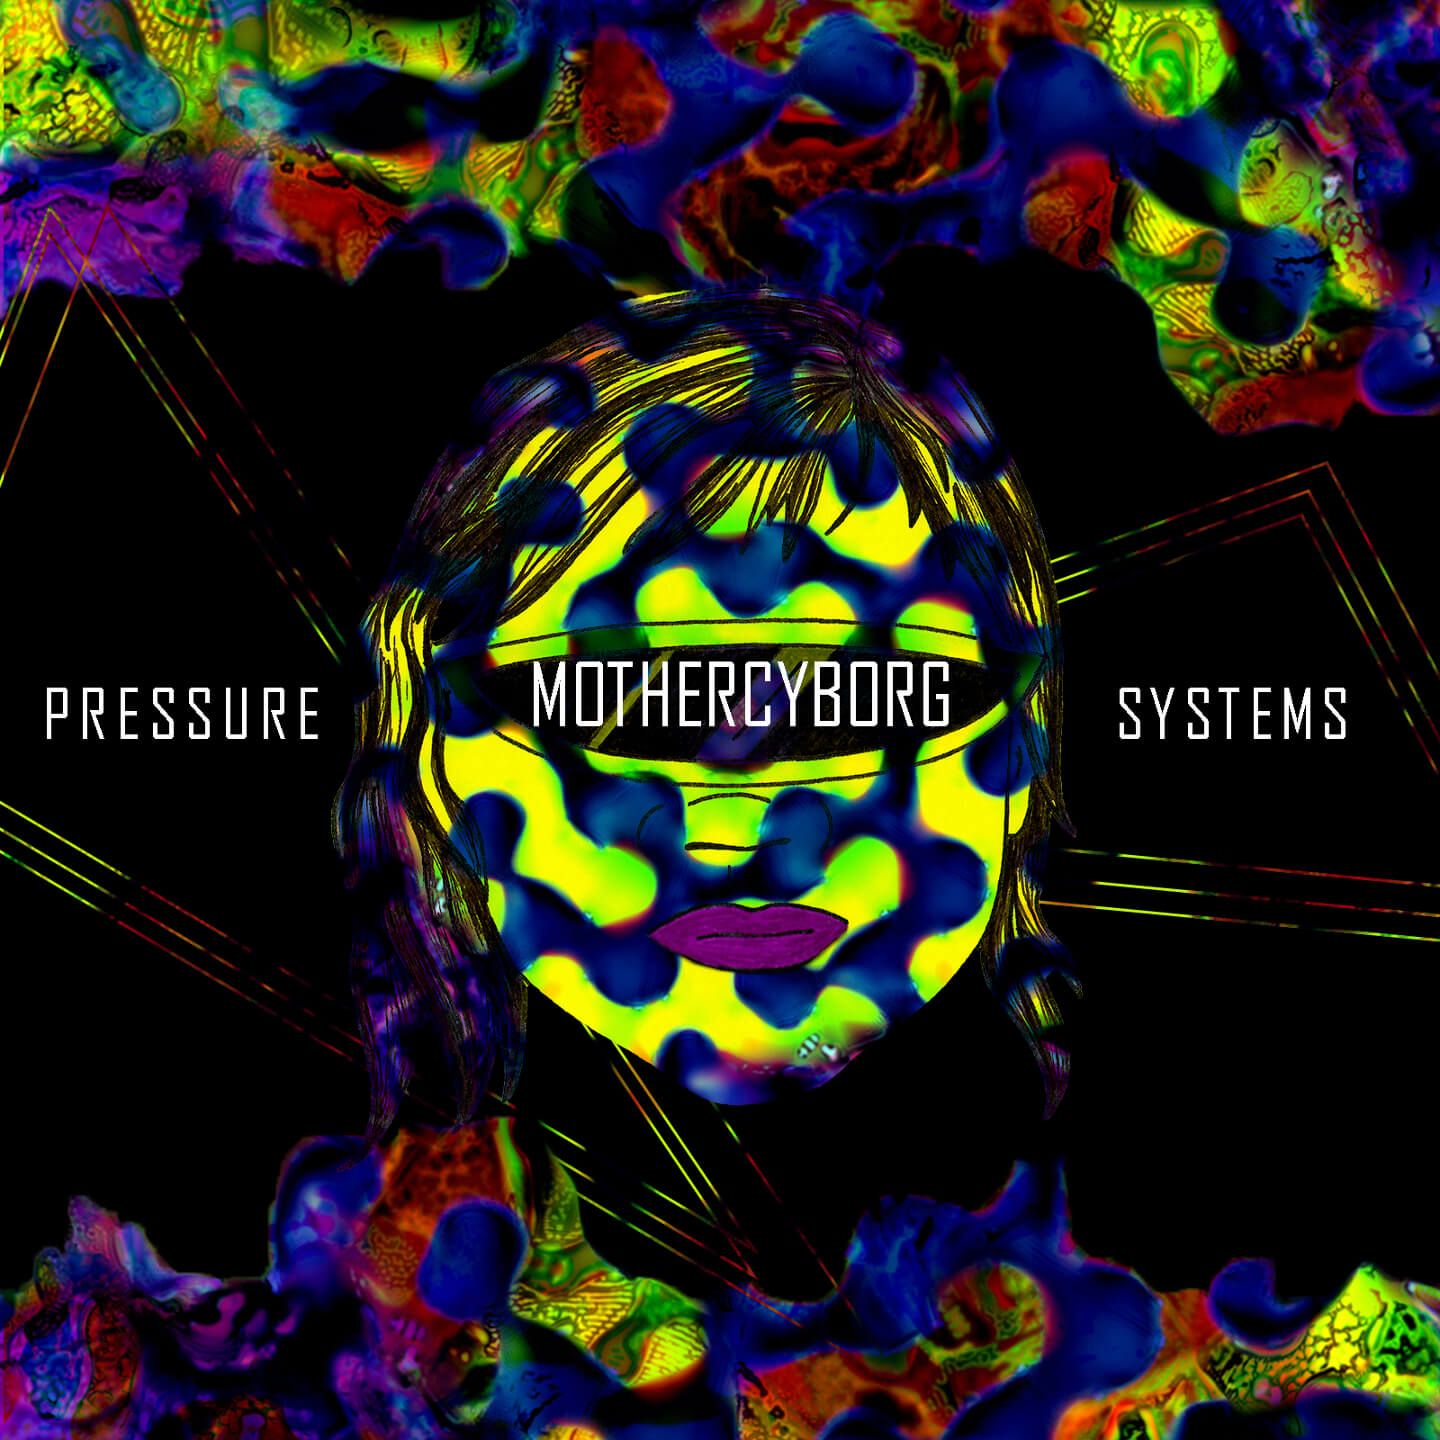 MOTHER_CYBORG_Pressure_Systems_PinkLizardMusic_medium